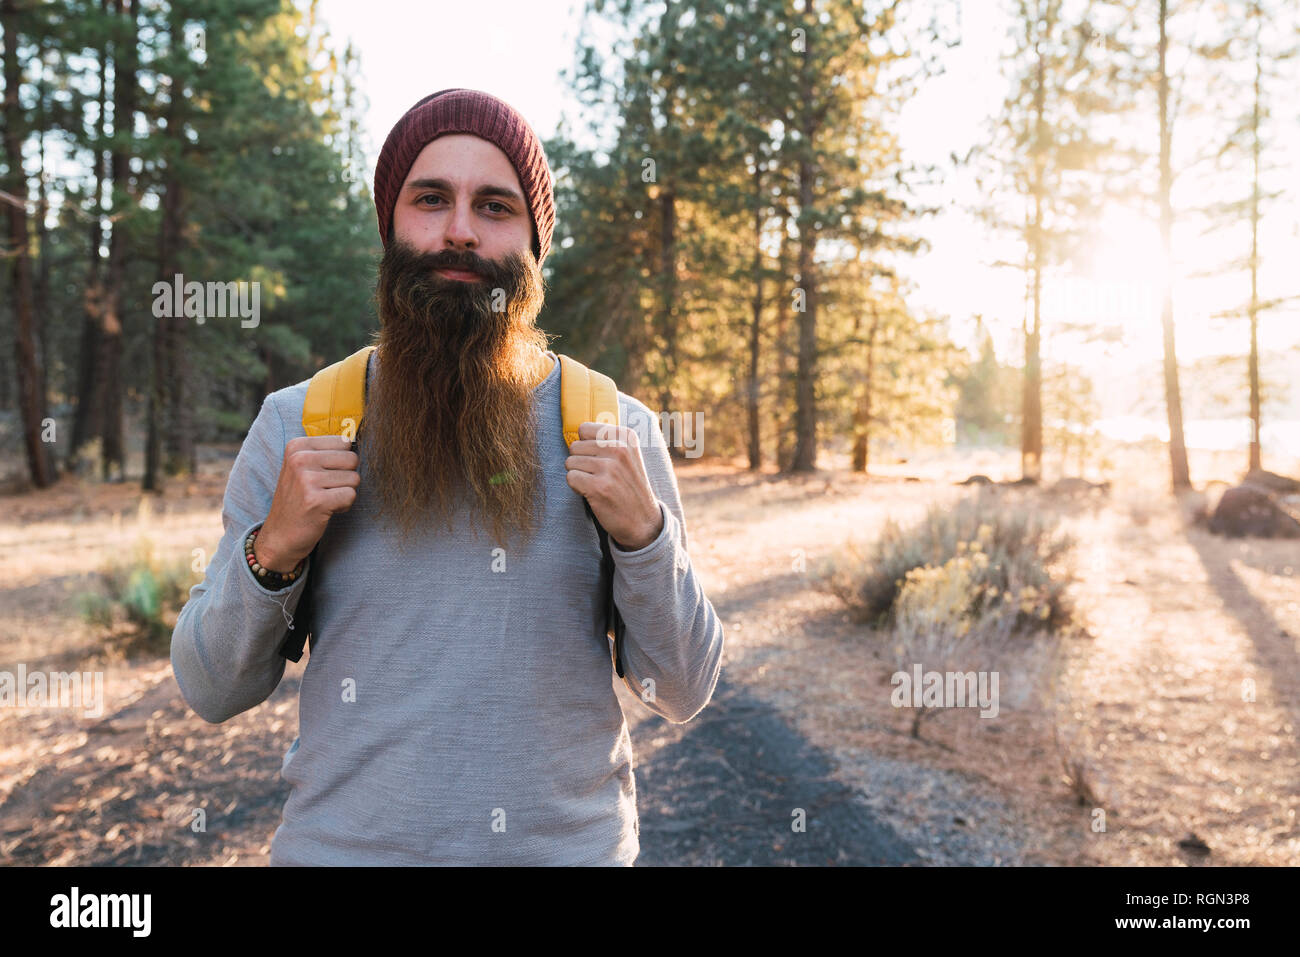 USA, North California, portrait of bearded man in a forest near Lassen Volcanic National Park - Stock Image